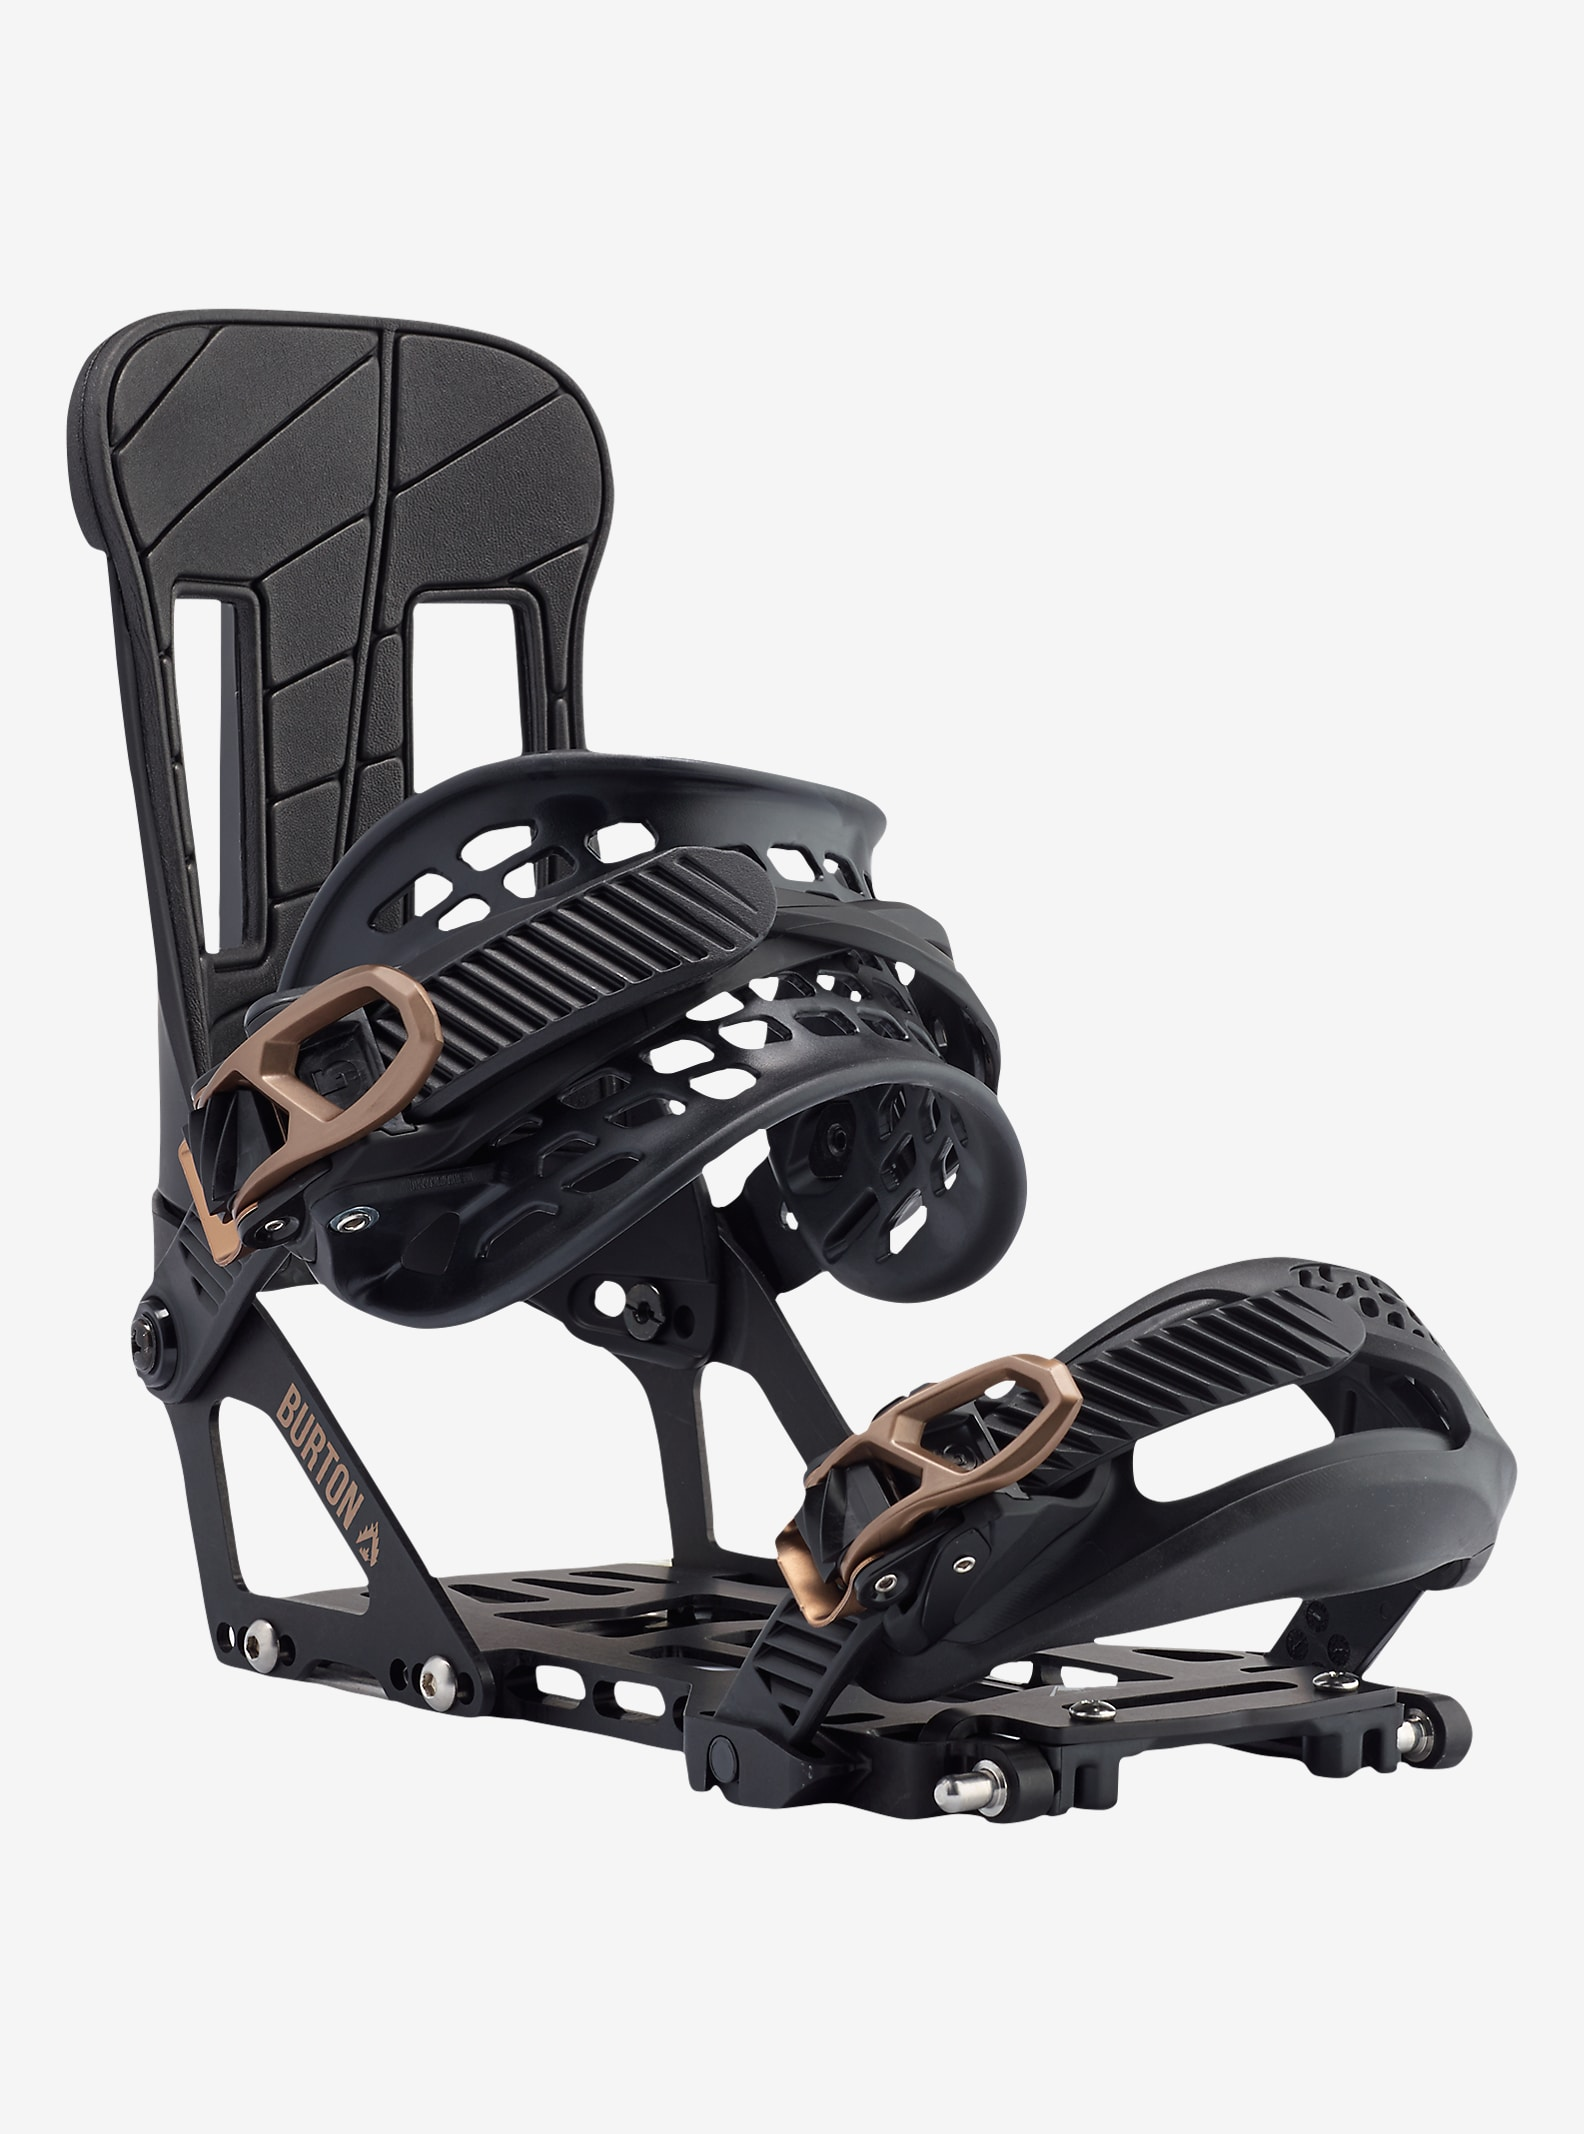 Burton Hitchhiker Snowboard Binding shown in Black Mag